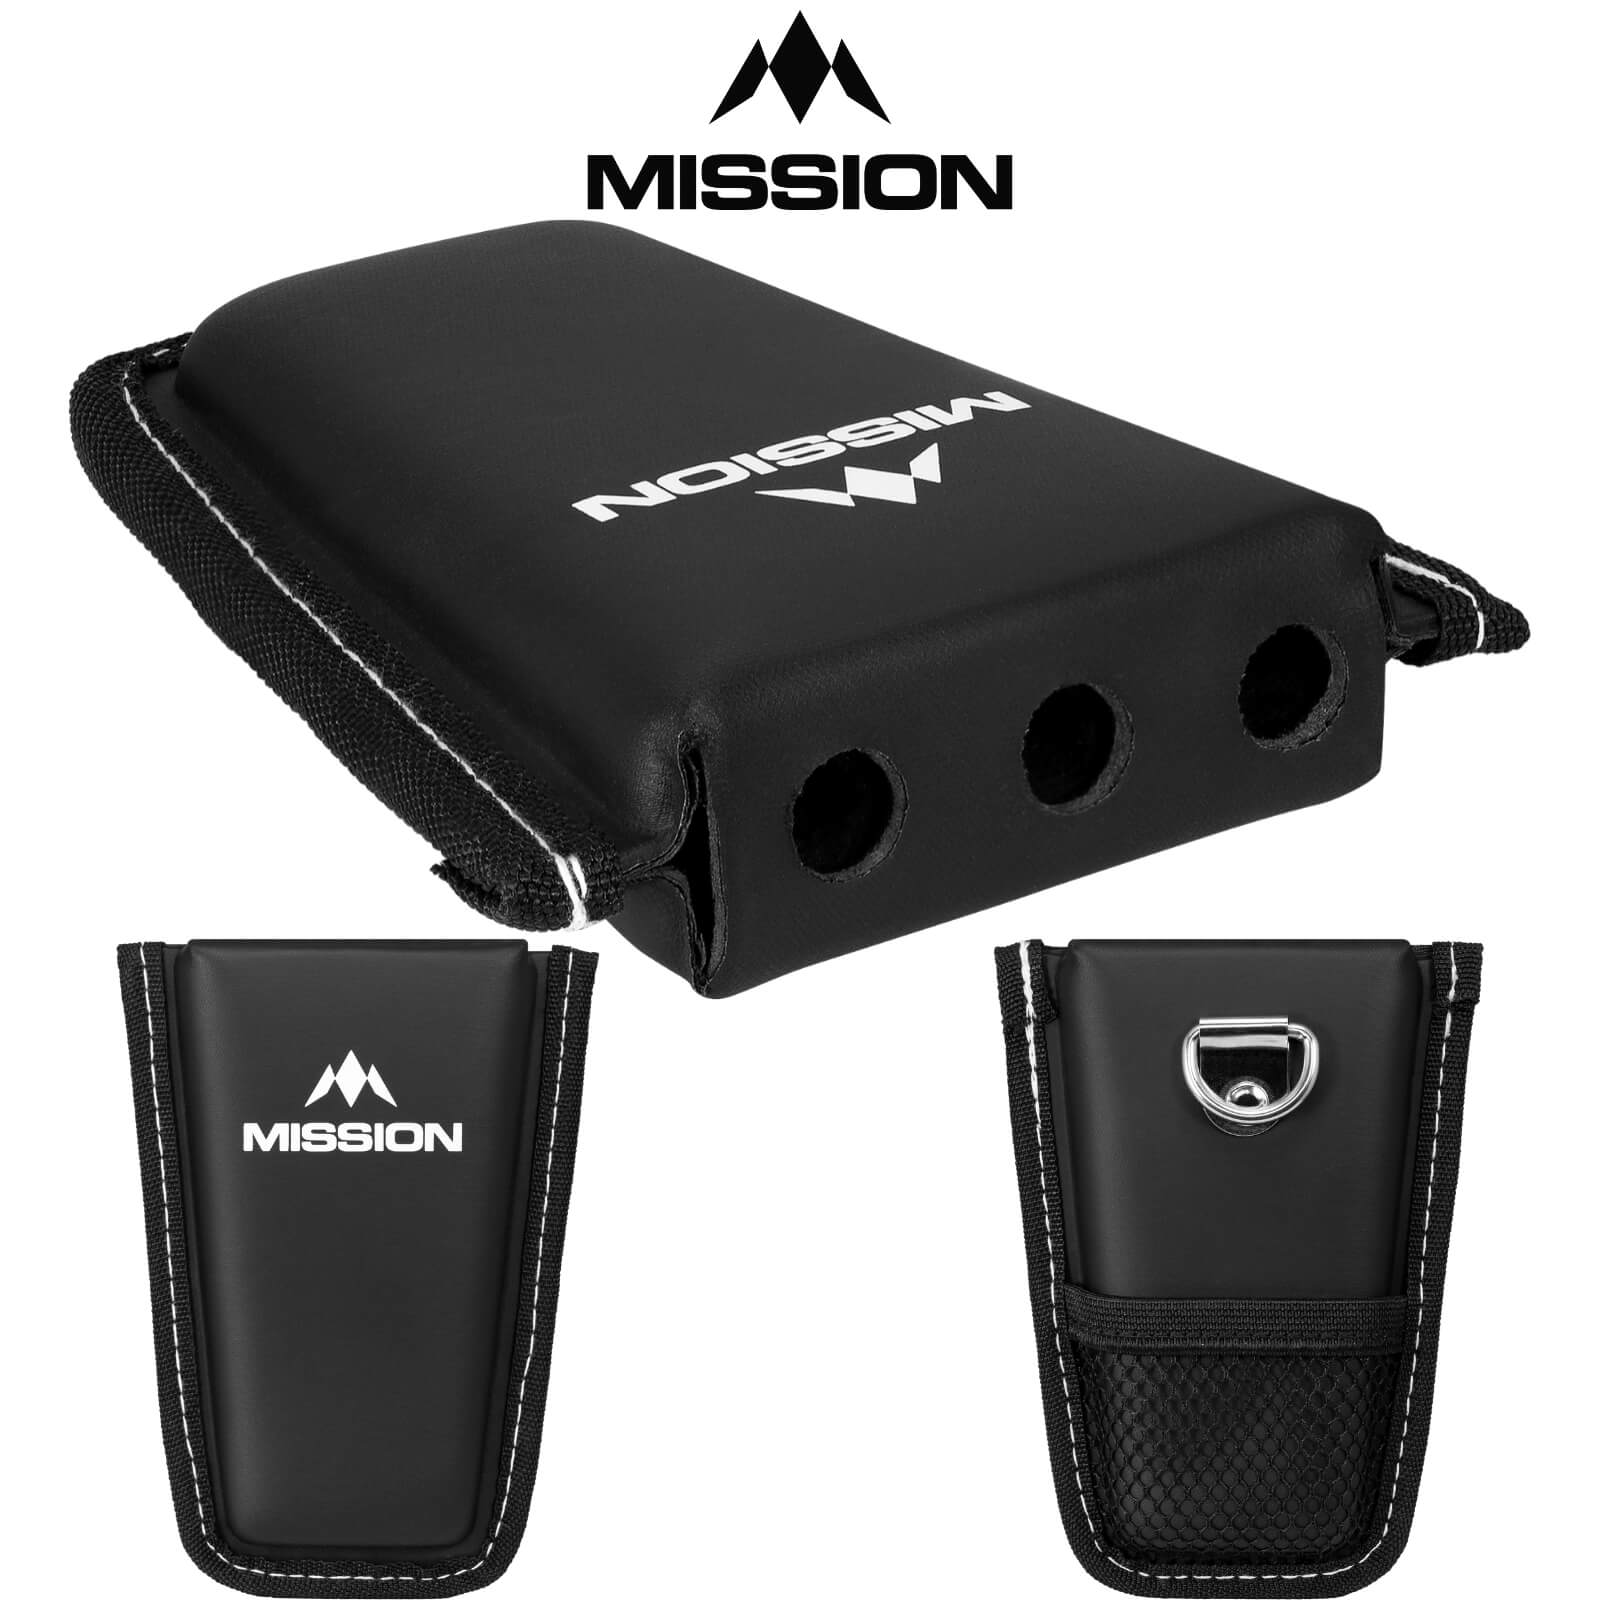 Dart Cases - Mission - POD Darts Case